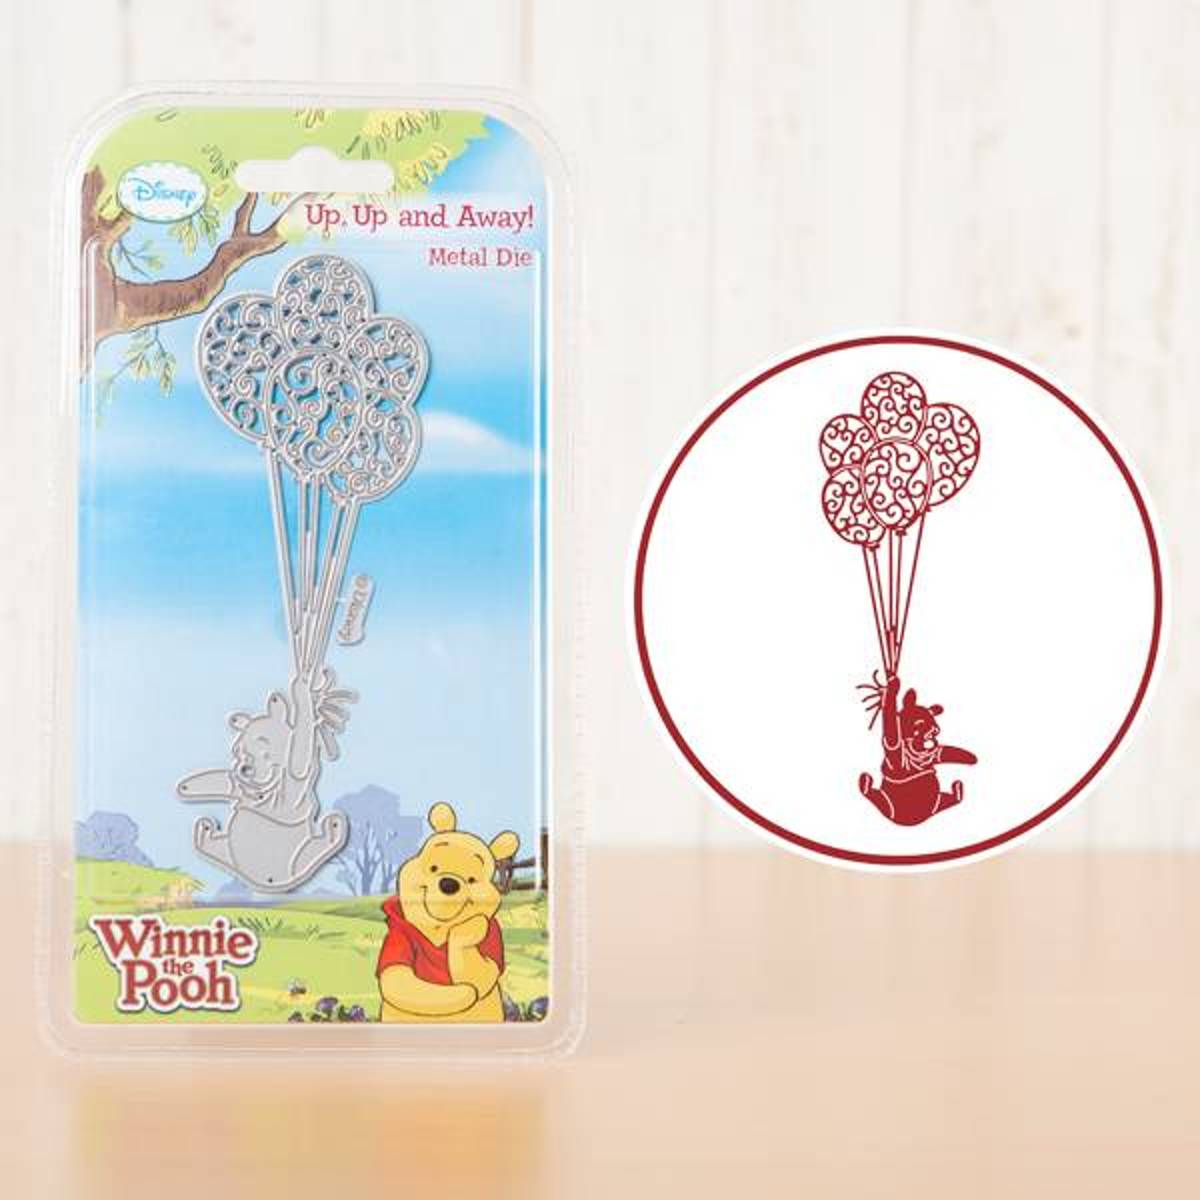 Disney Winnie the Pooh Up, Up and Away (DL106)